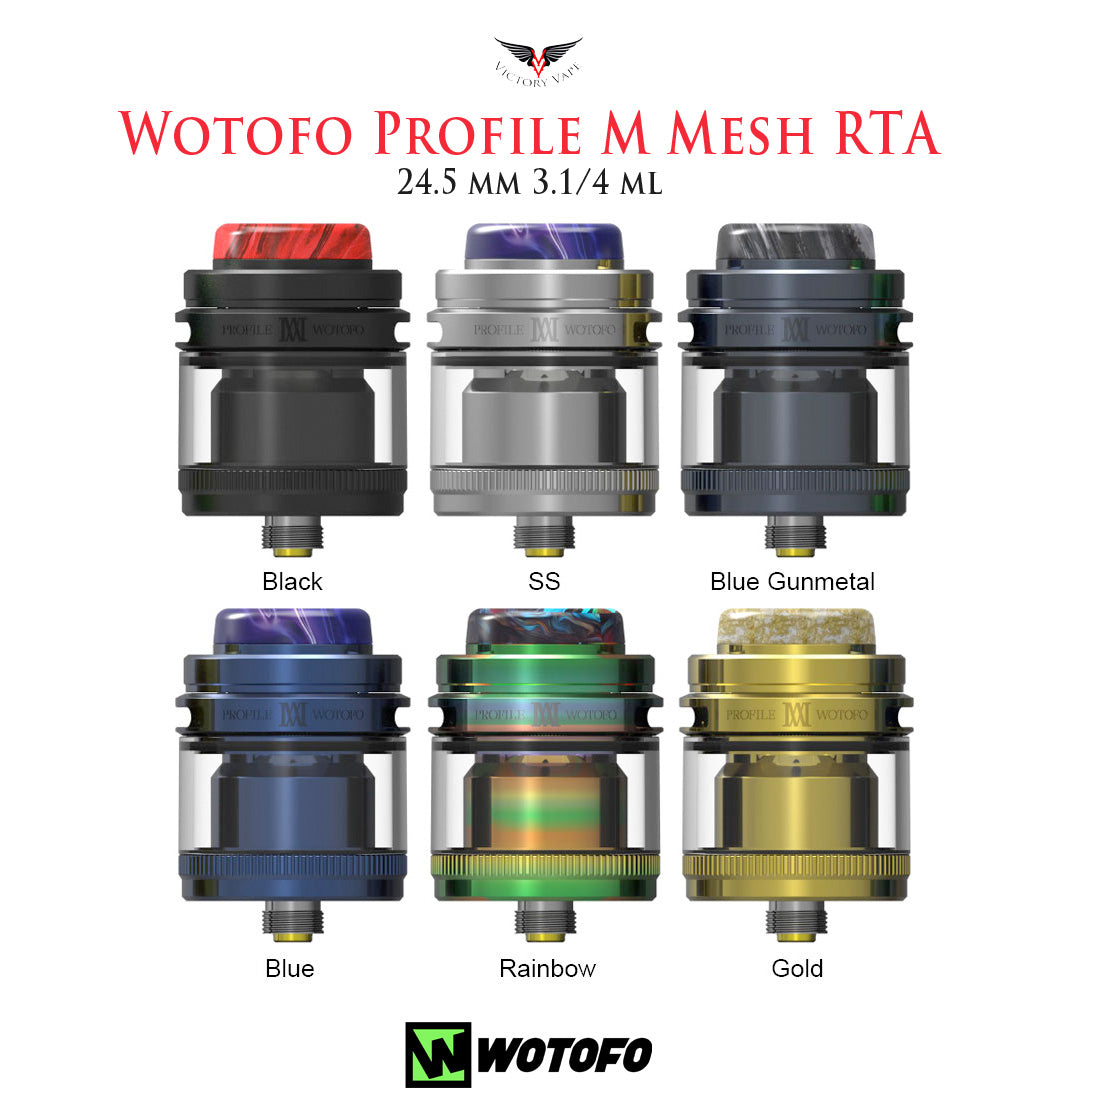 Wotofo Profile M Mesh RTA • 24.5 mm 3.1 ml straight /4 ml bubble